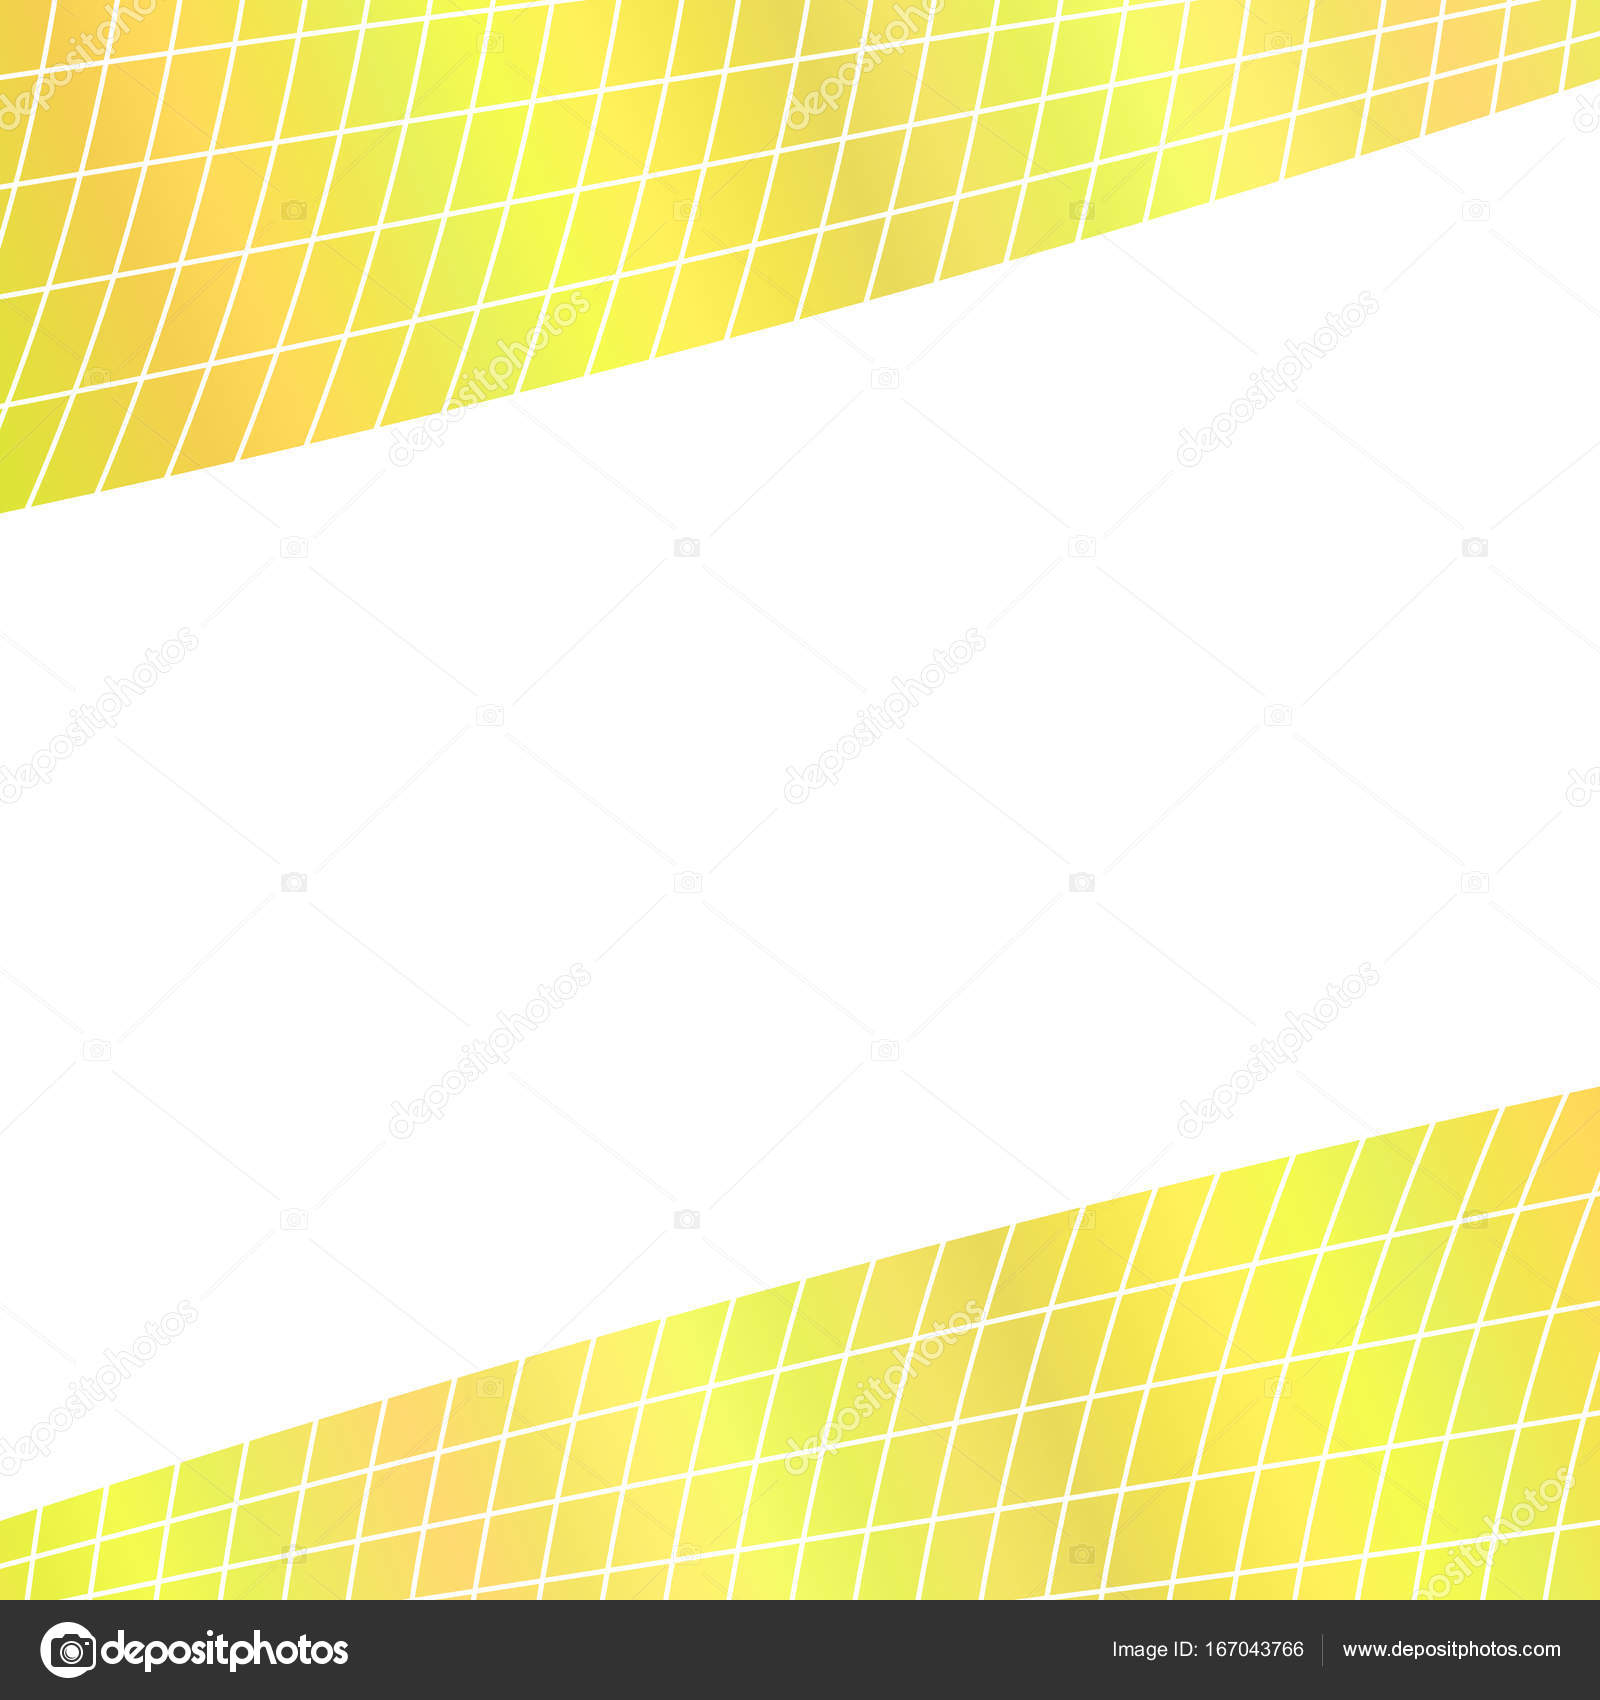 Abstract grid background - illustration from curved angular